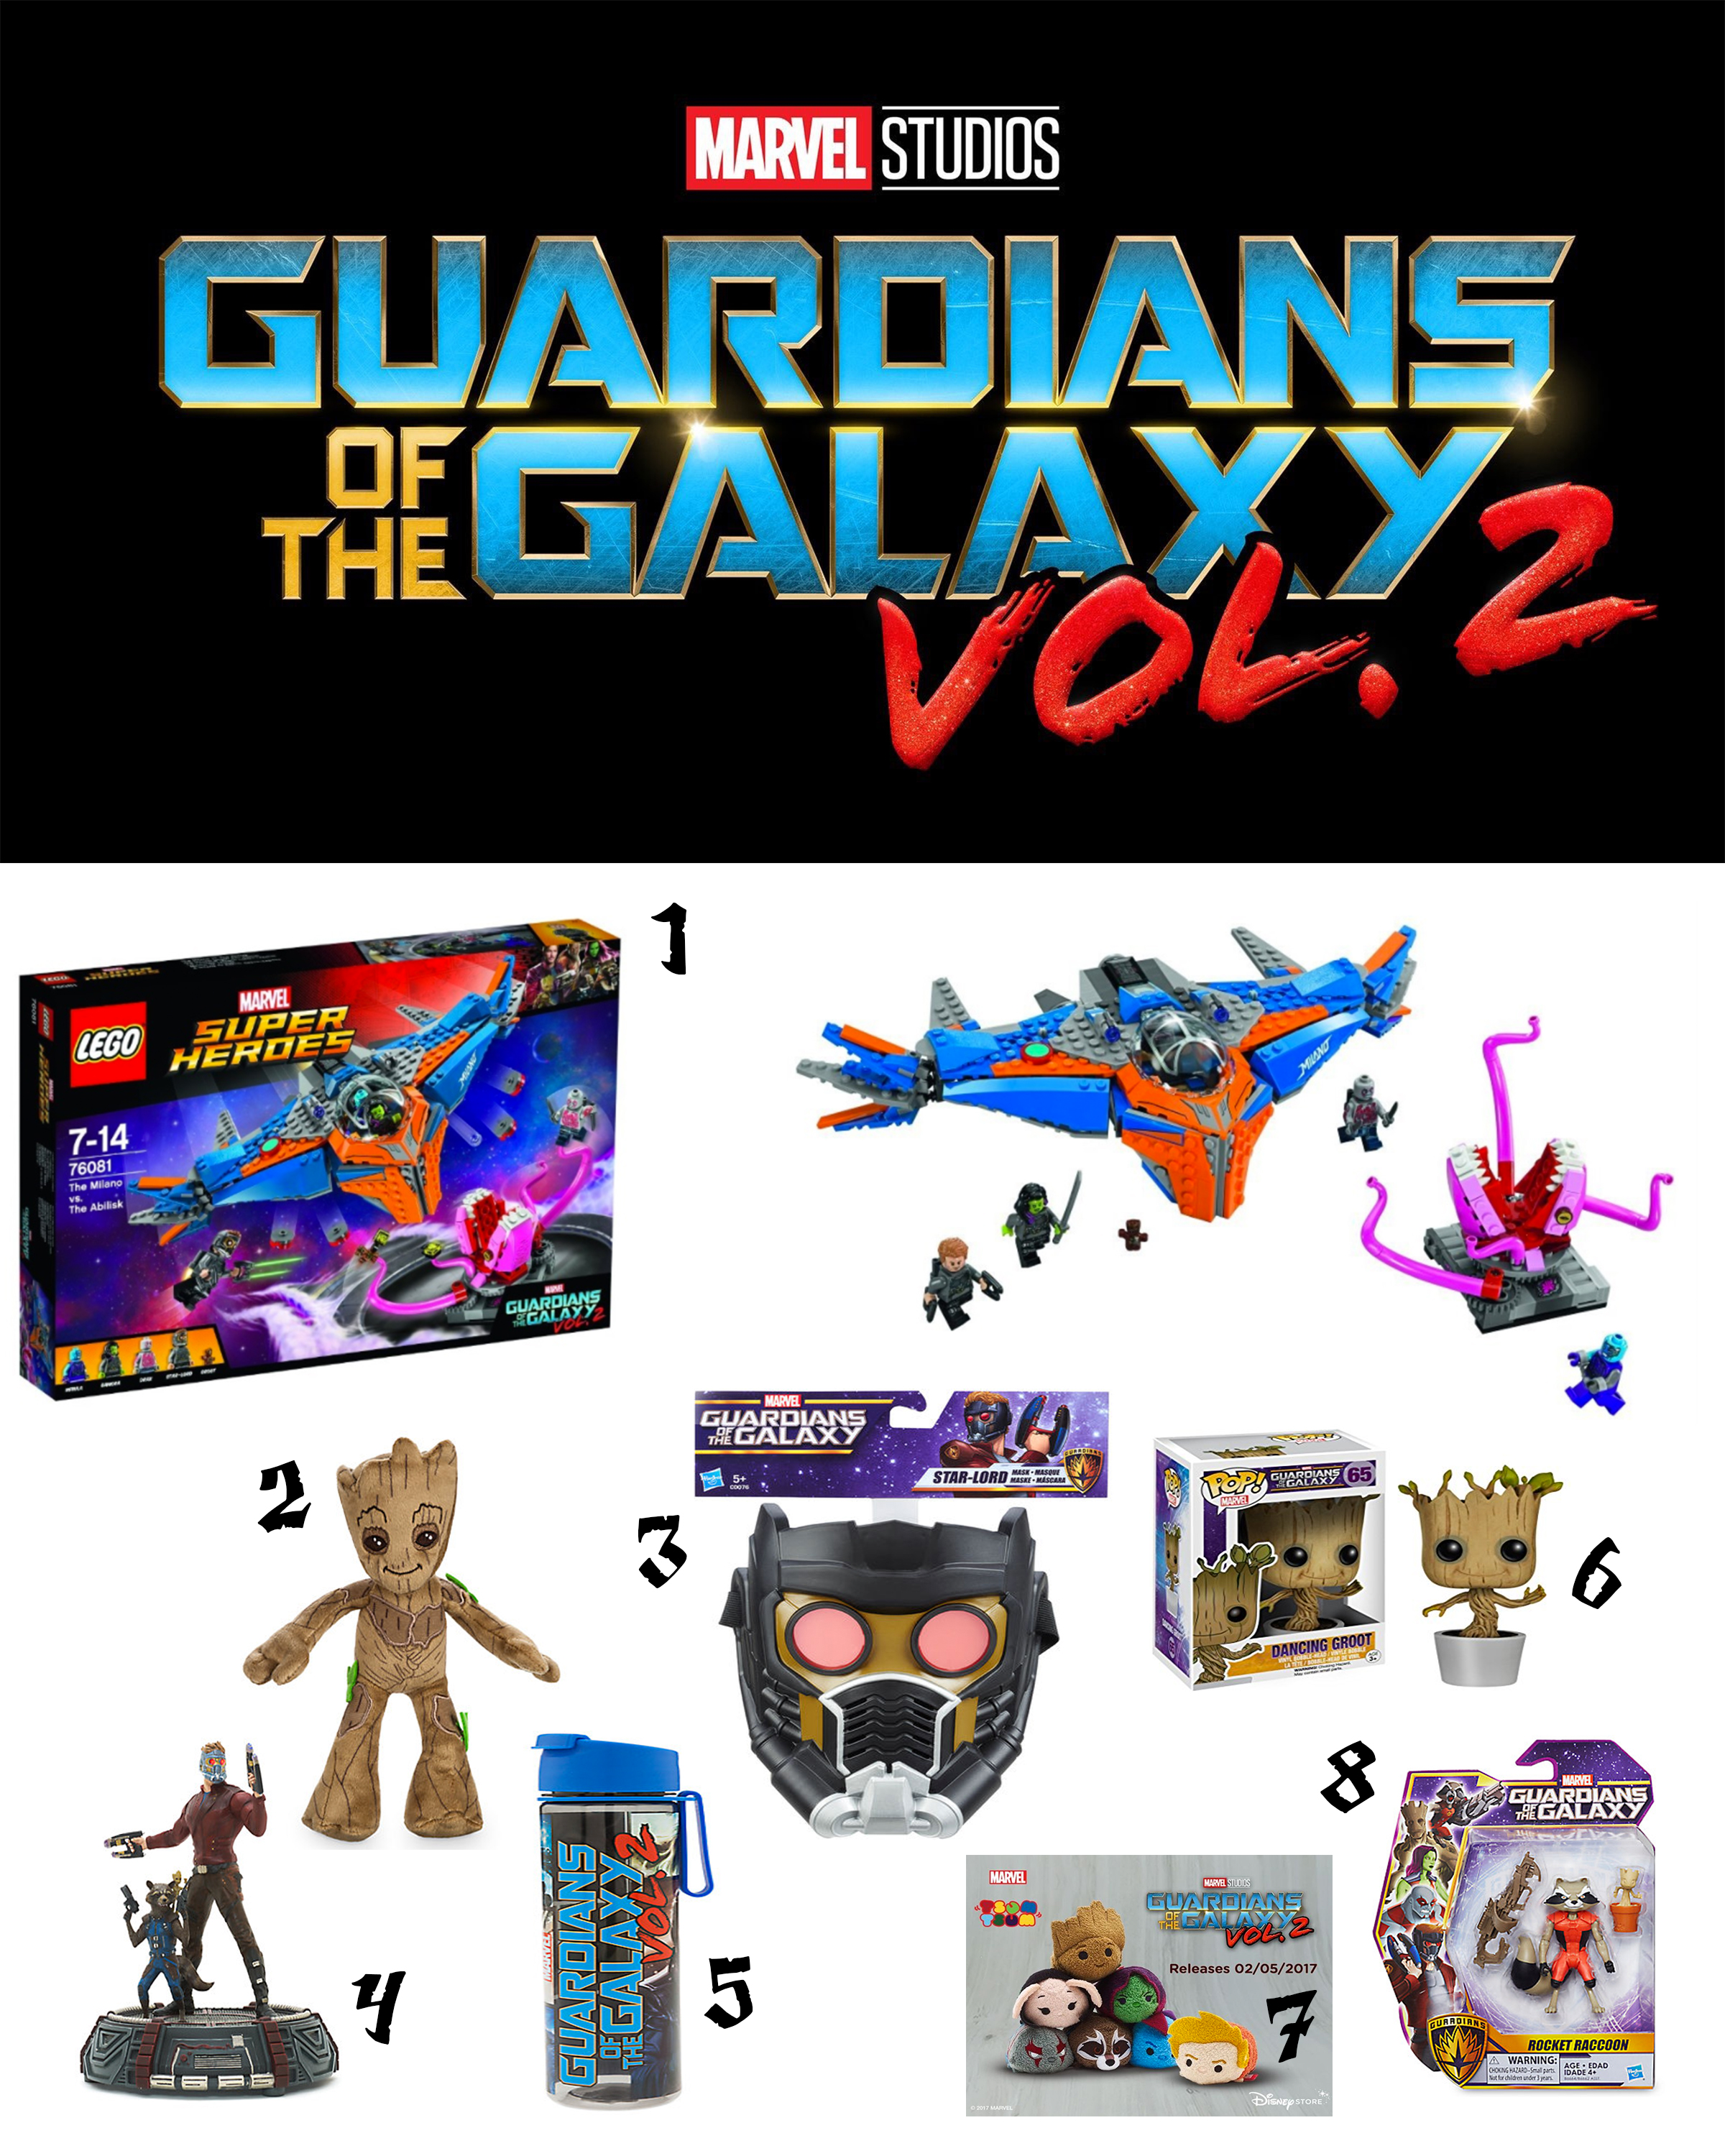 GUARDIANS OF THE GALAXY VOL. 2.: FAVOURITE MOVIE MERCHANDISE